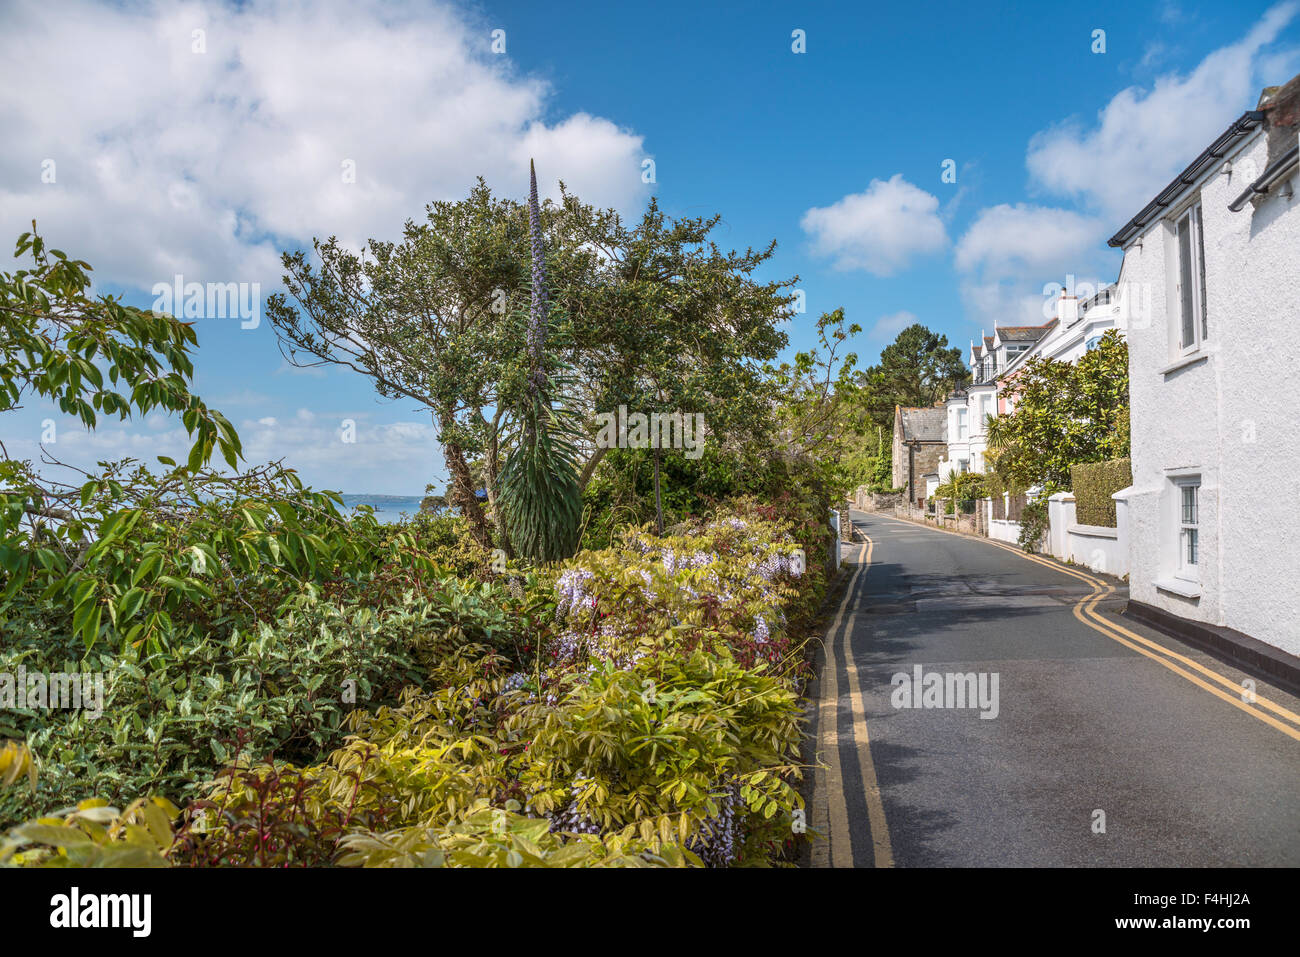 Scenic coastal street at the fishing village St.Mawes, Cornwall, England, UK | Malerische Kuestenstrasse in St.Mawes, - Stock Image